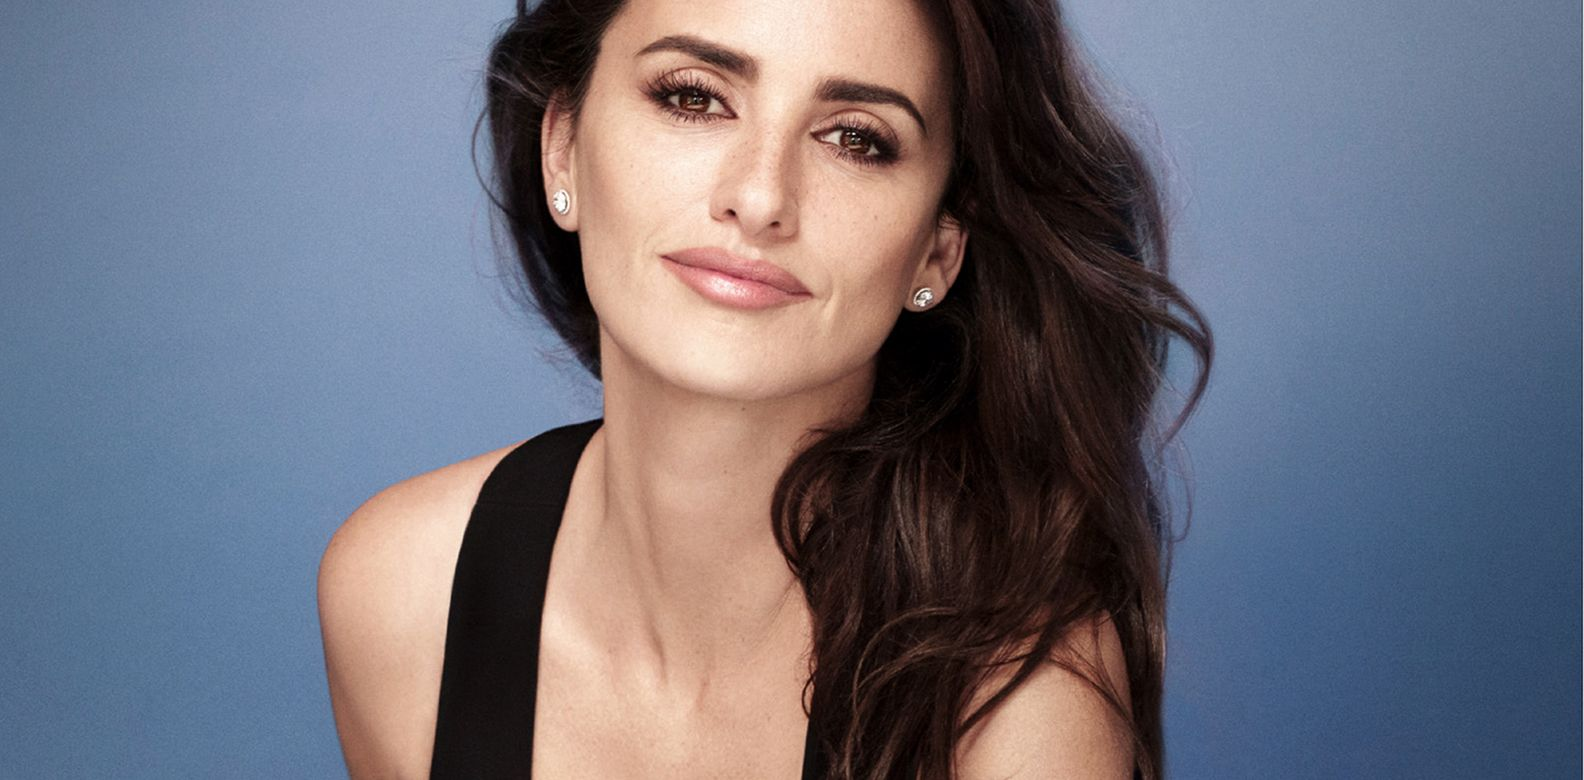 penelope cruz on the power of mascara philippine tatler. Black Bedroom Furniture Sets. Home Design Ideas